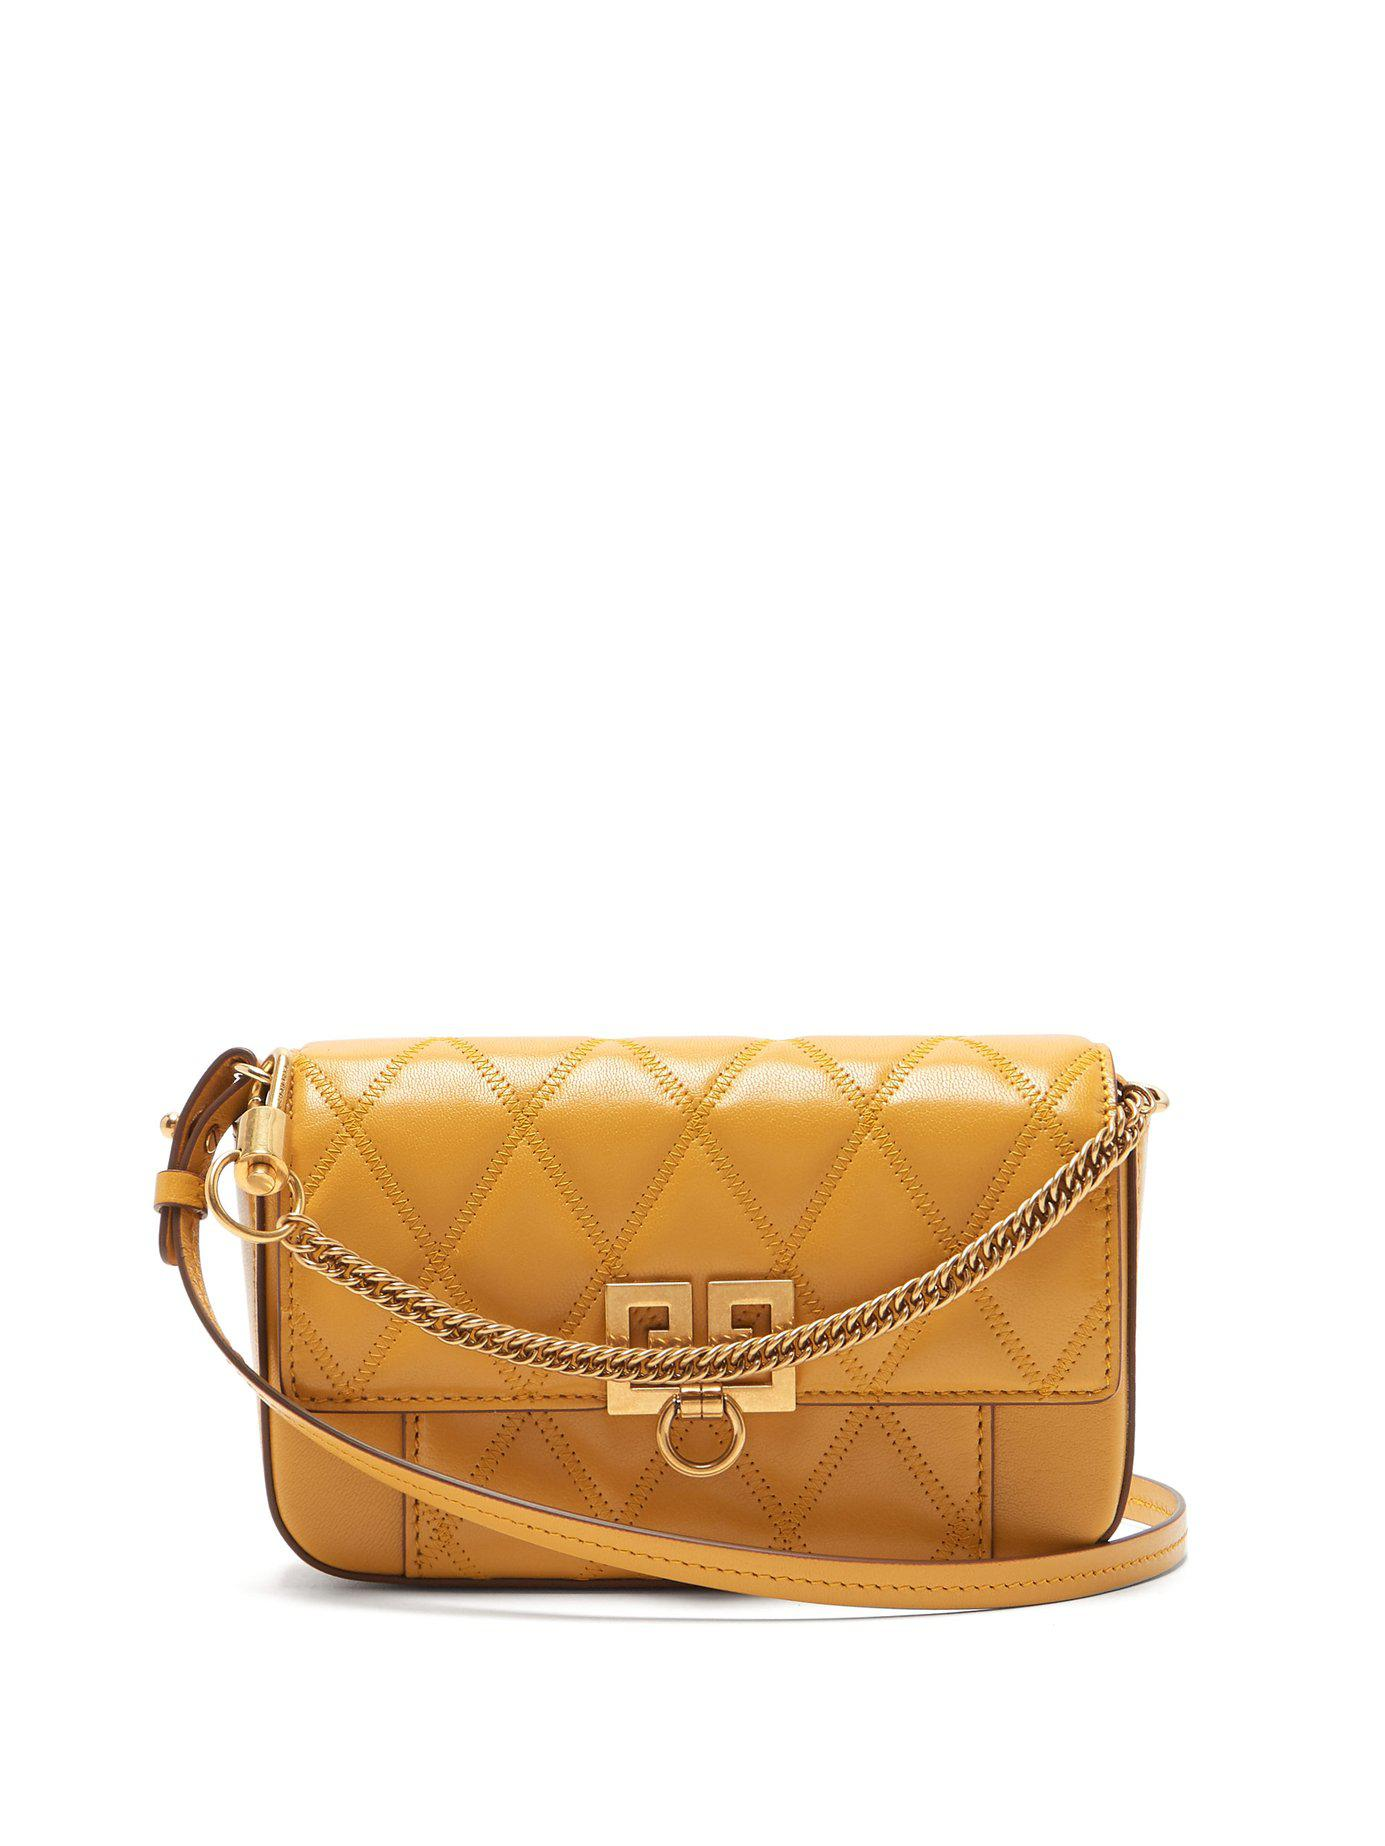 f66bbd17c70 Lyst - Givenchy Pocket Quilted Leather Cross Body Bag in Yellow ...